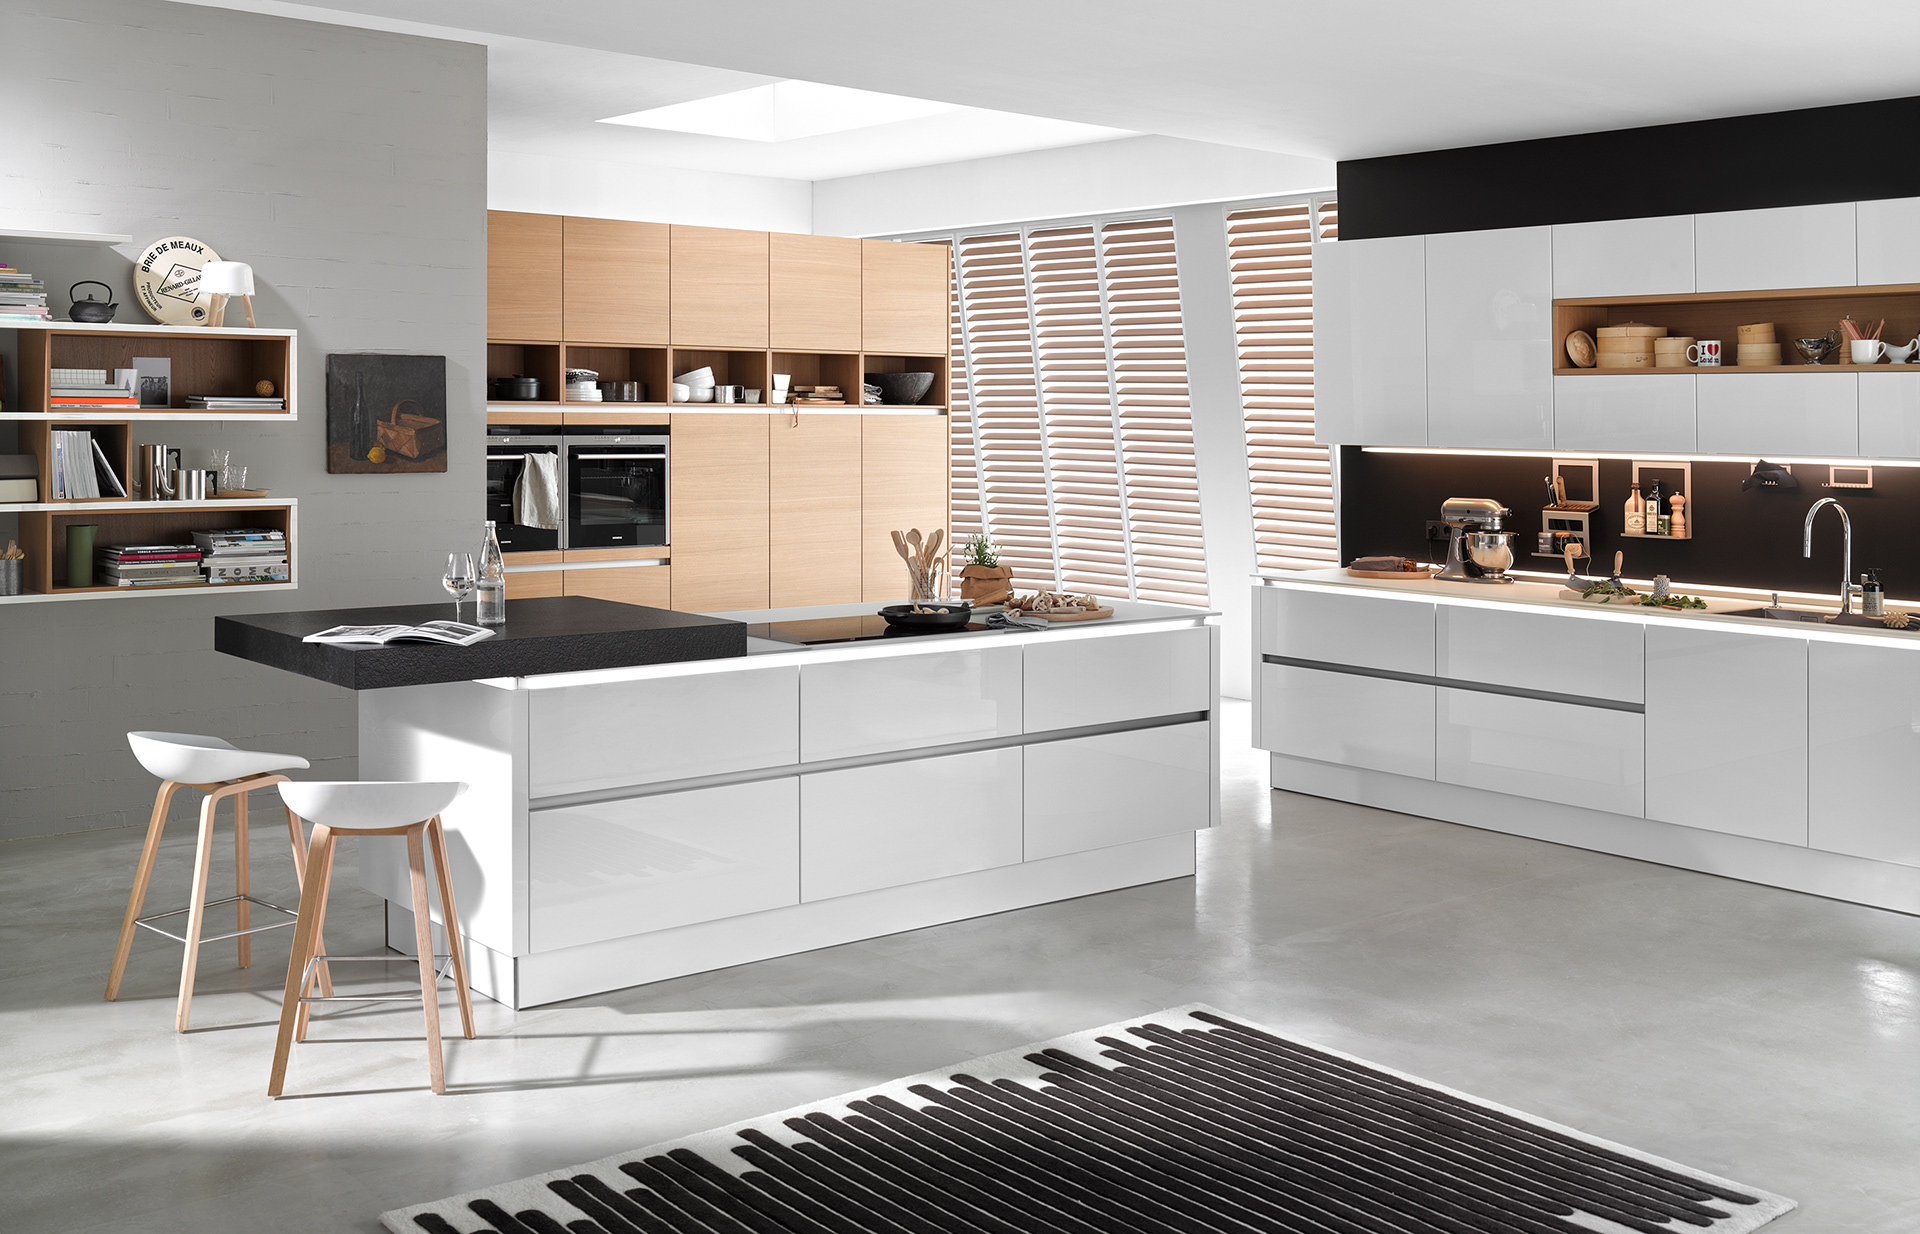 Imagery Post Production - Nolte Kitchens